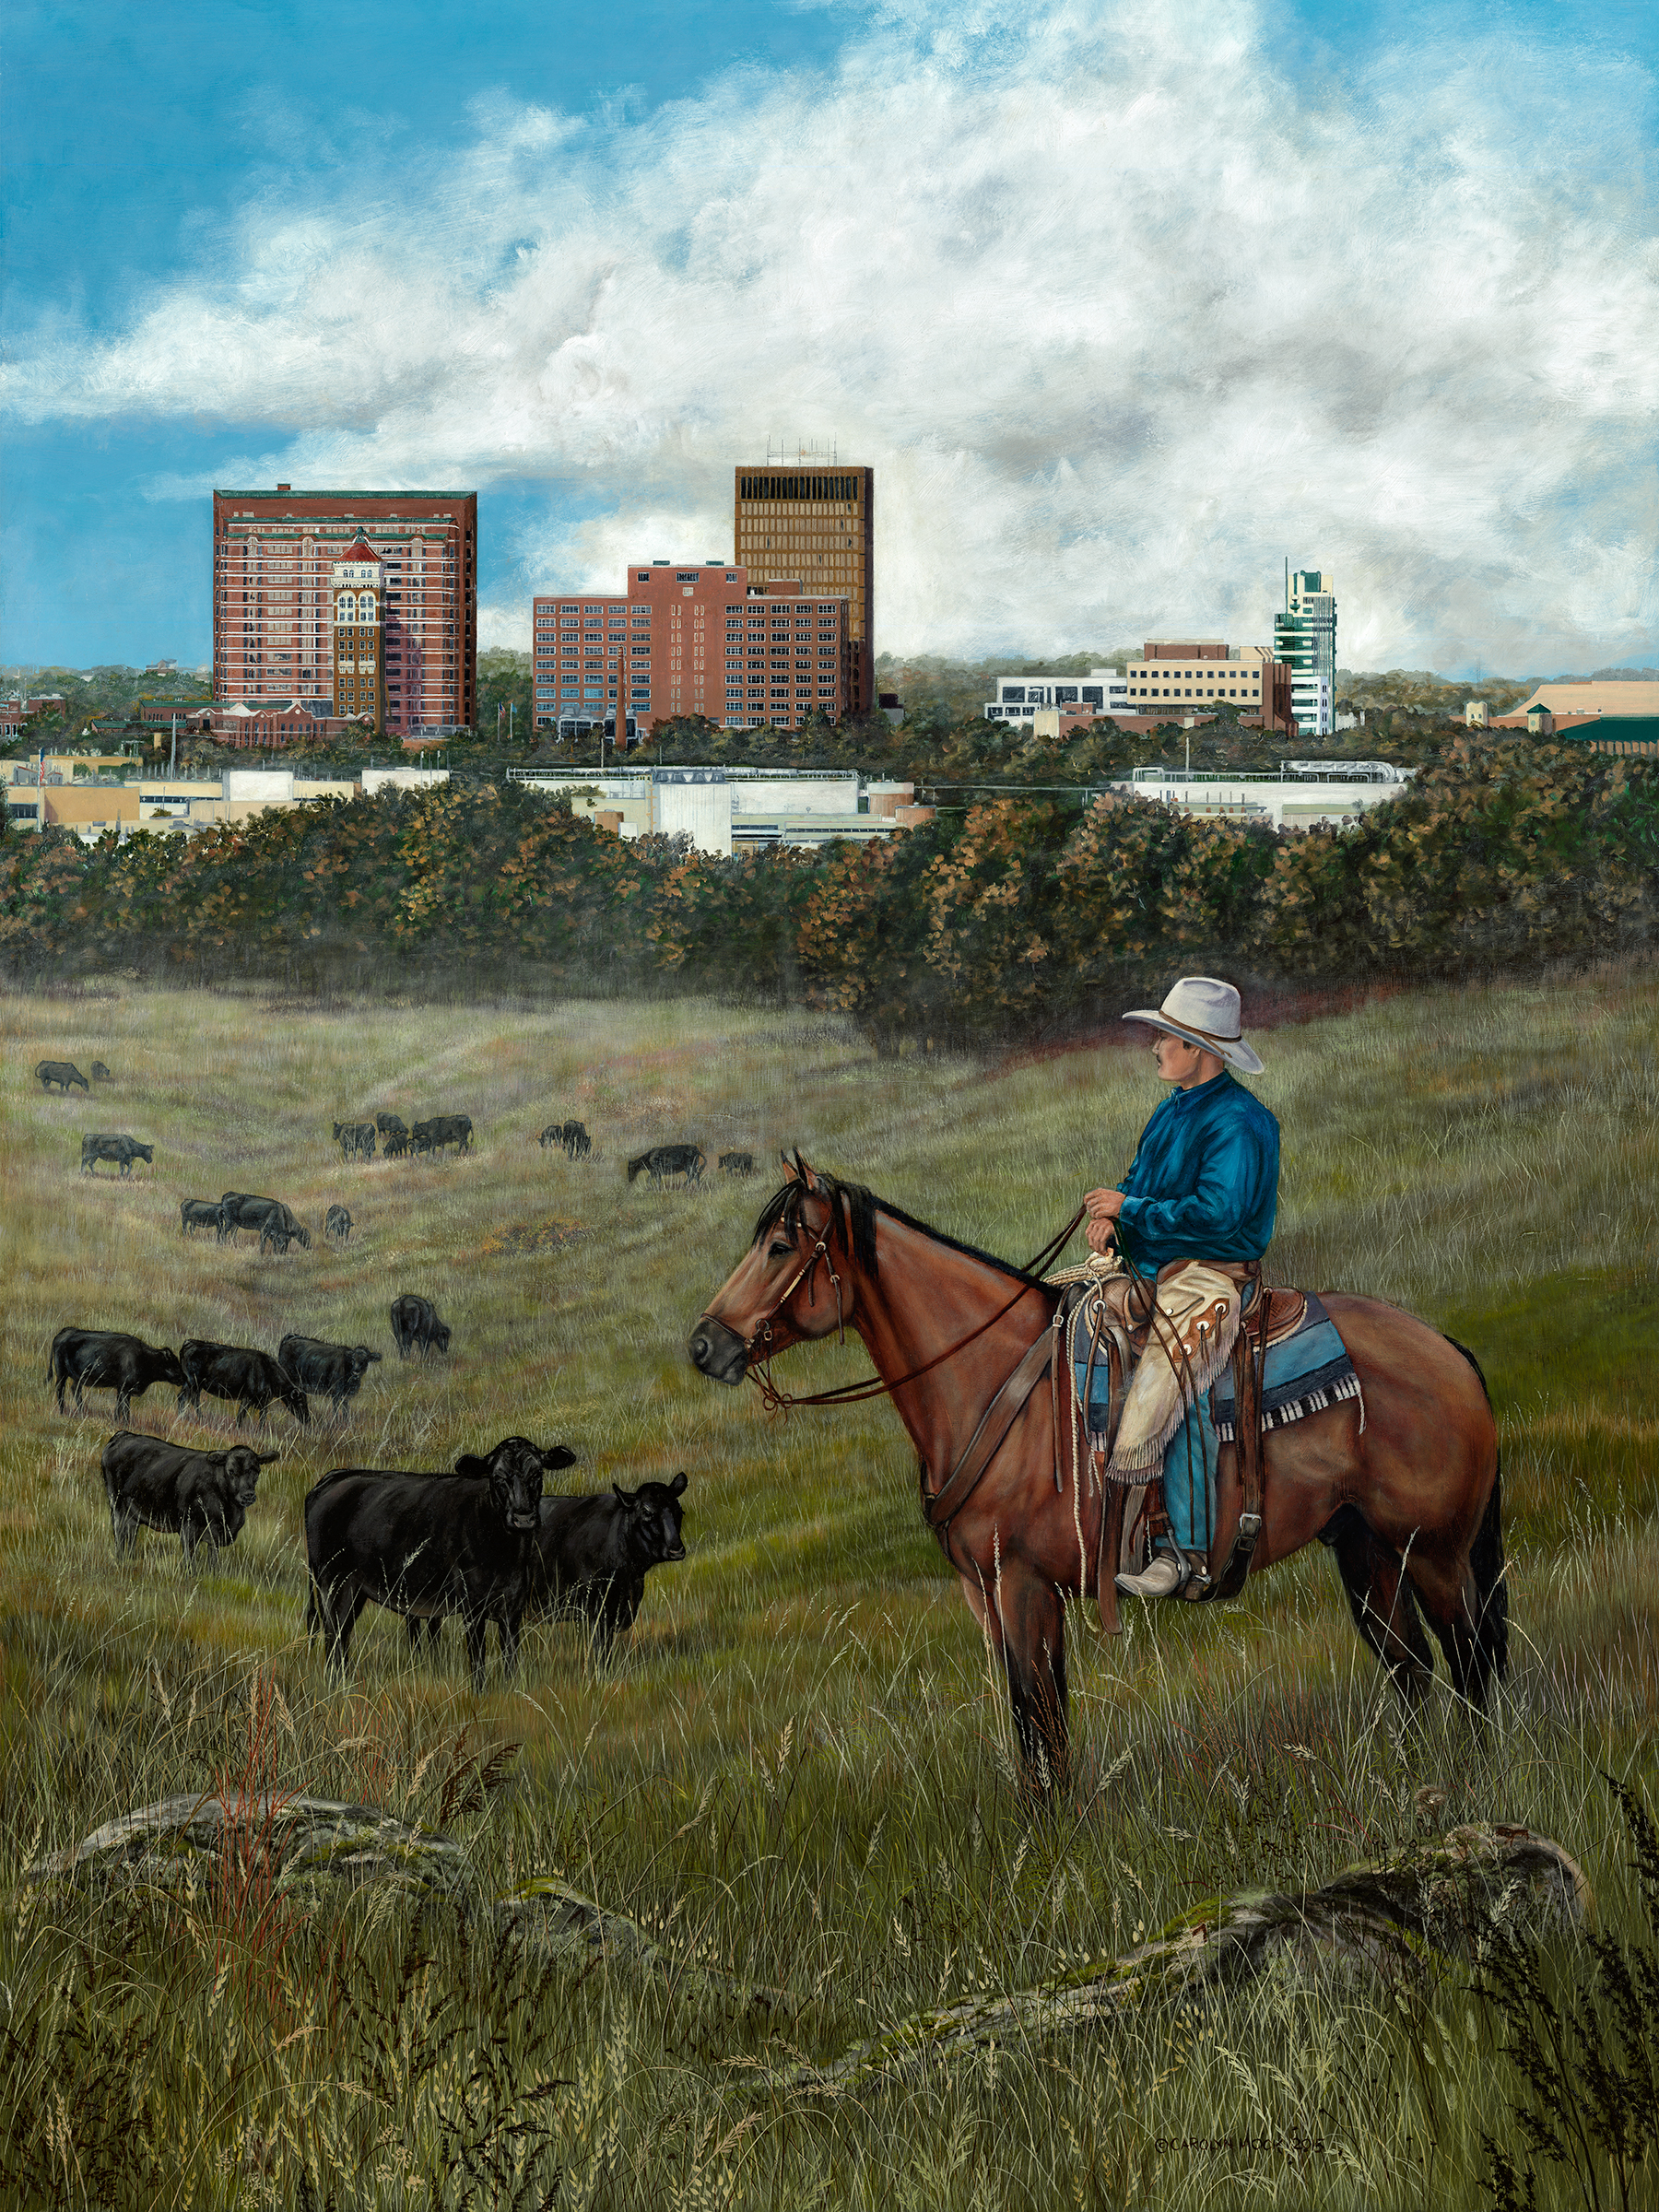 A cowboy watches over his cattle, as a city looms in the background